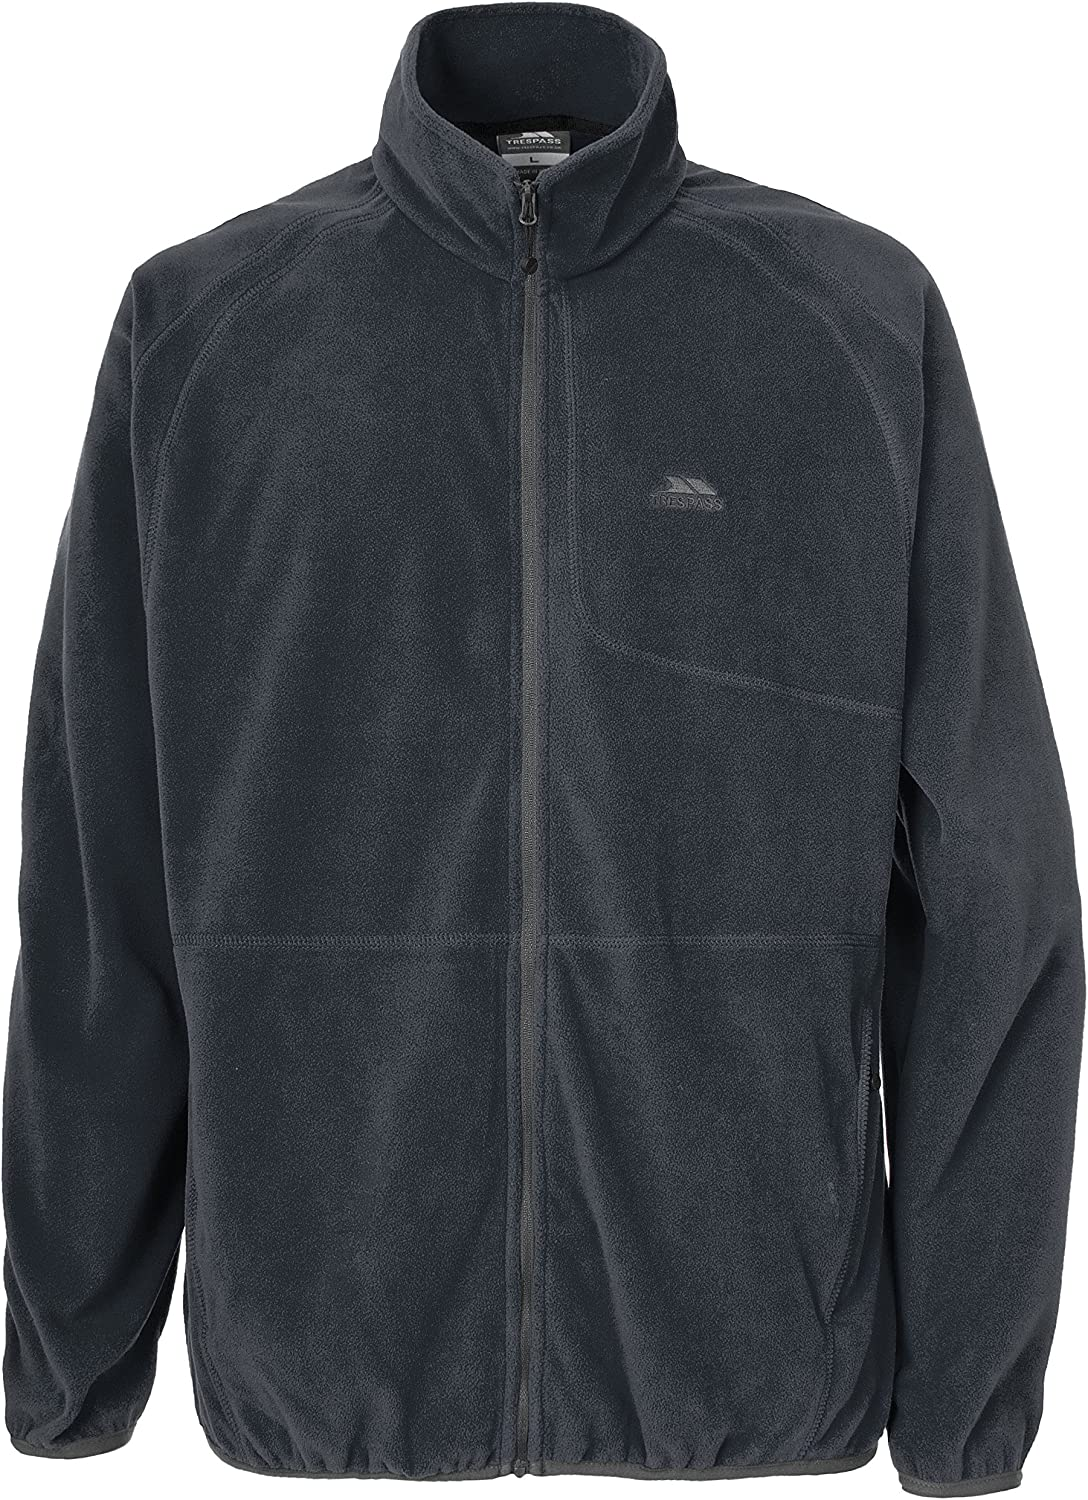 Trespass Mens Gladstone Microfleece Jacket